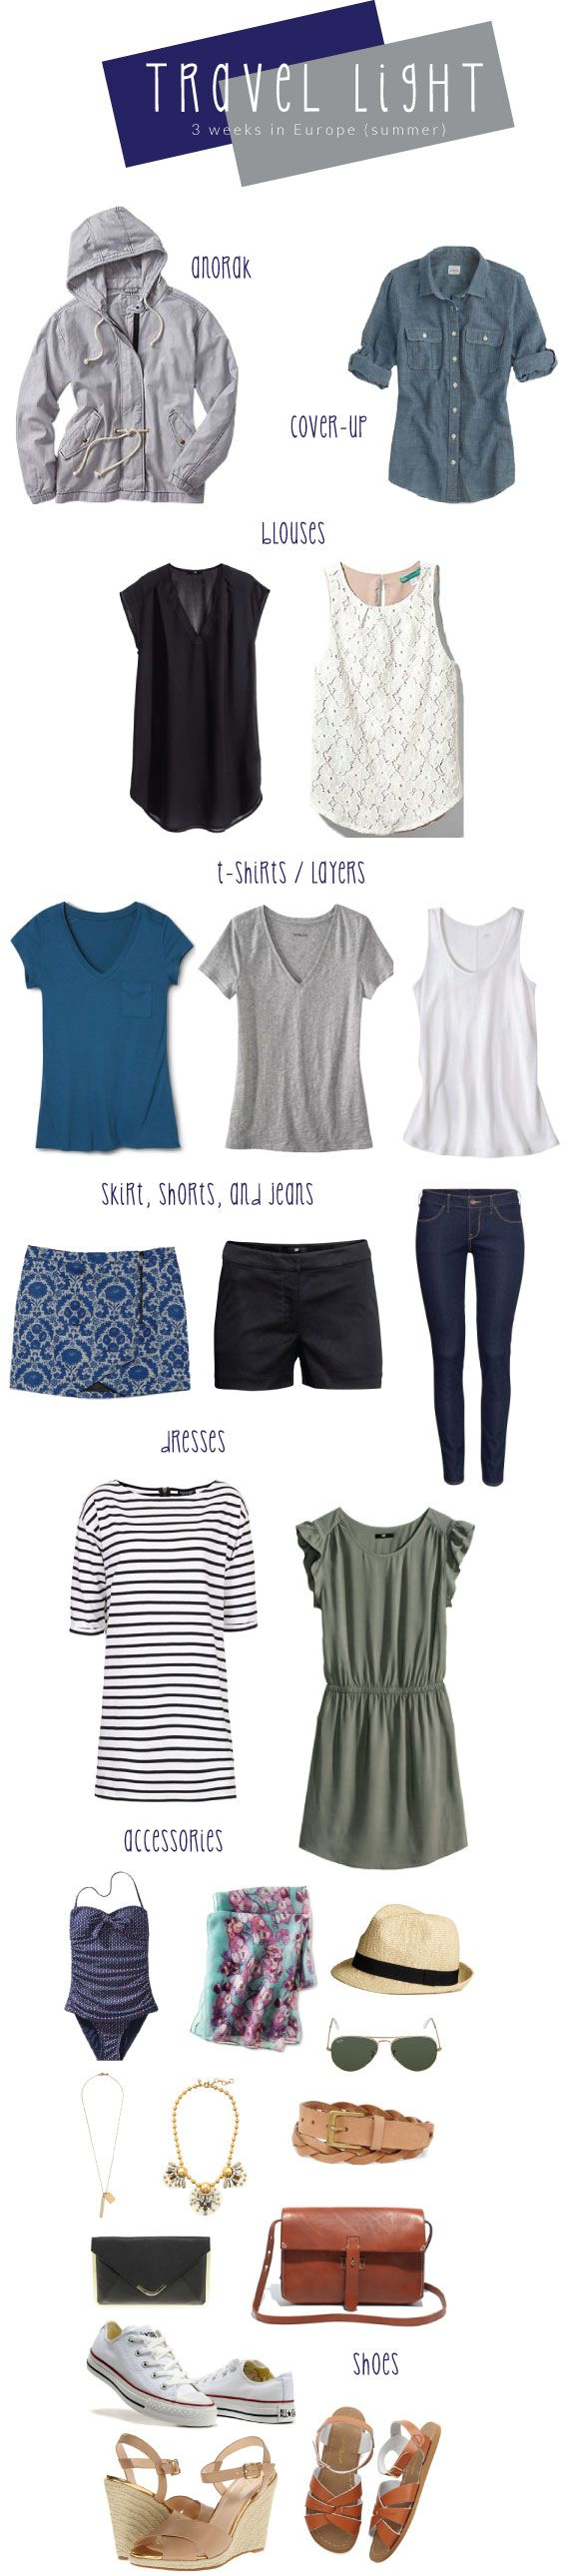 Packing light spring/summer- because I always overpack!